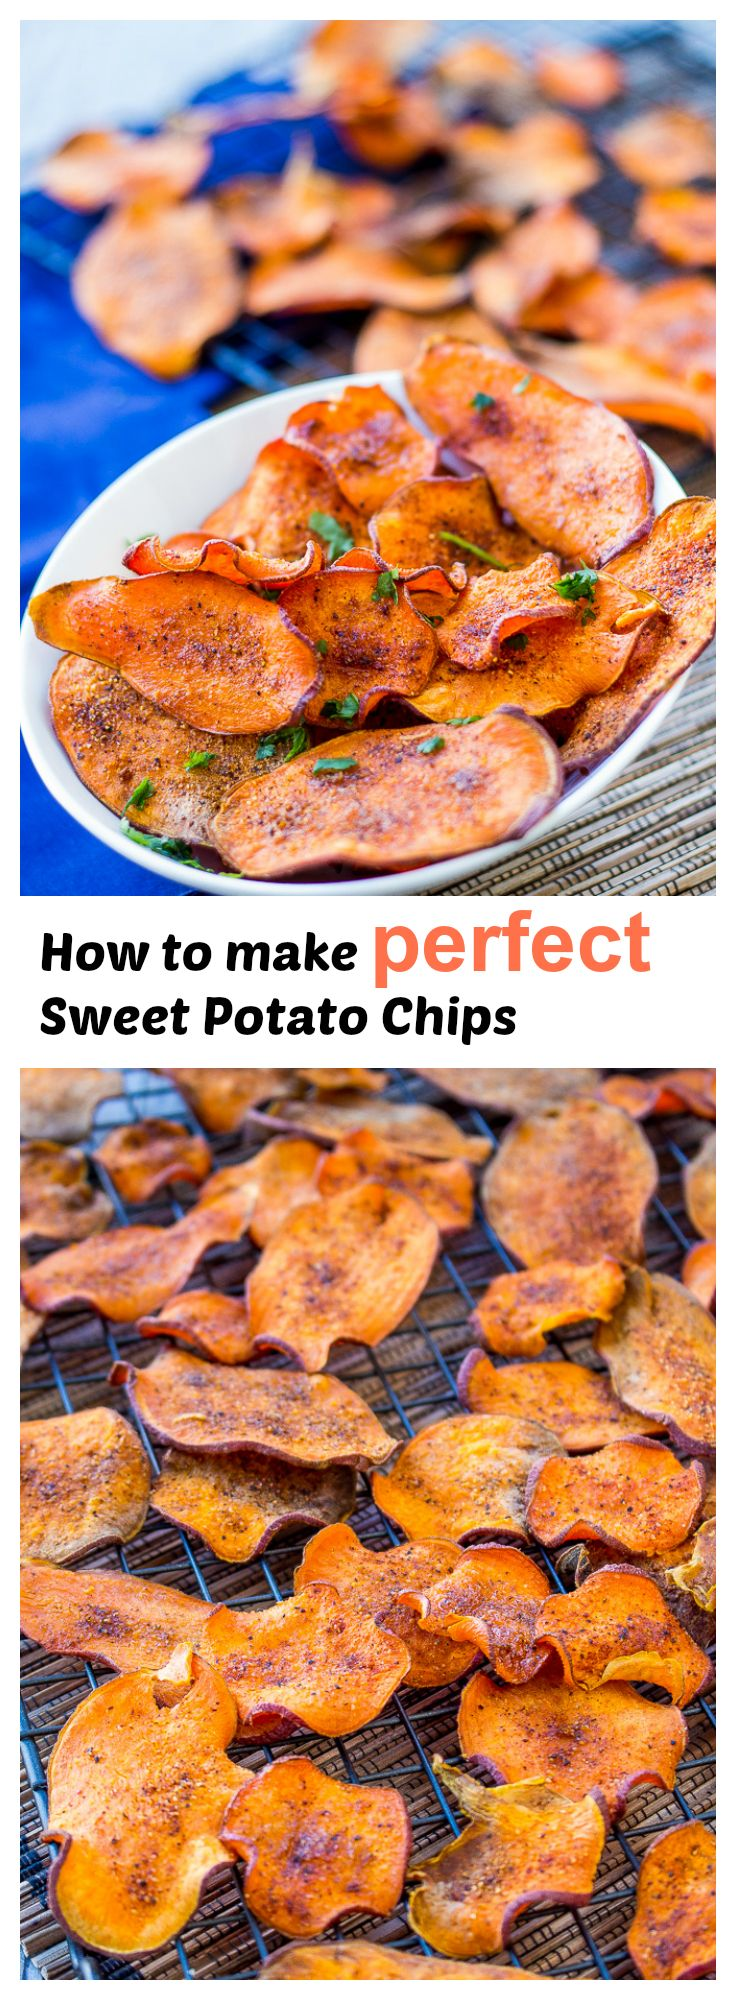 Tips and tricks for perfect sweet potato chips. Crispy, flavorful and guilt free with a zesty sweet and salty seasoning.